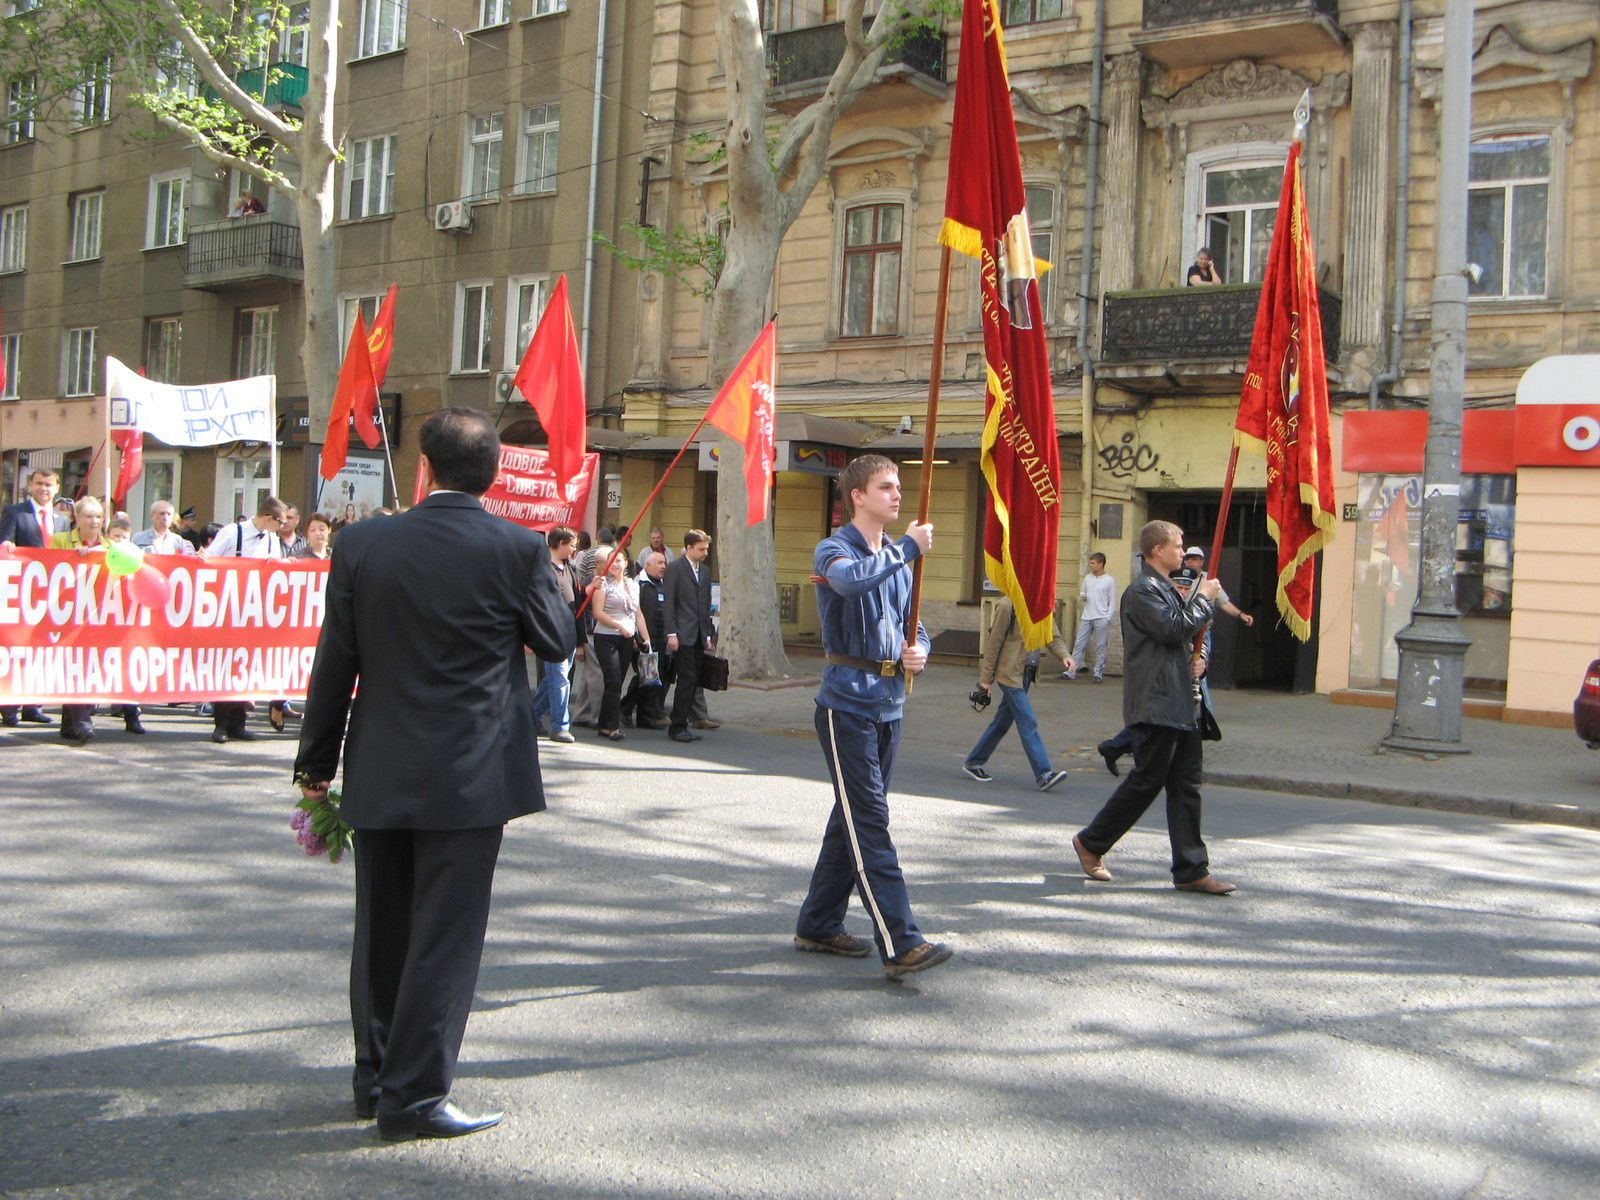 UN DEBUT DE PLANNING DE LA TOURNEE DES UKRAINIENS COMMUNISTES ET ANTIFASCISTES